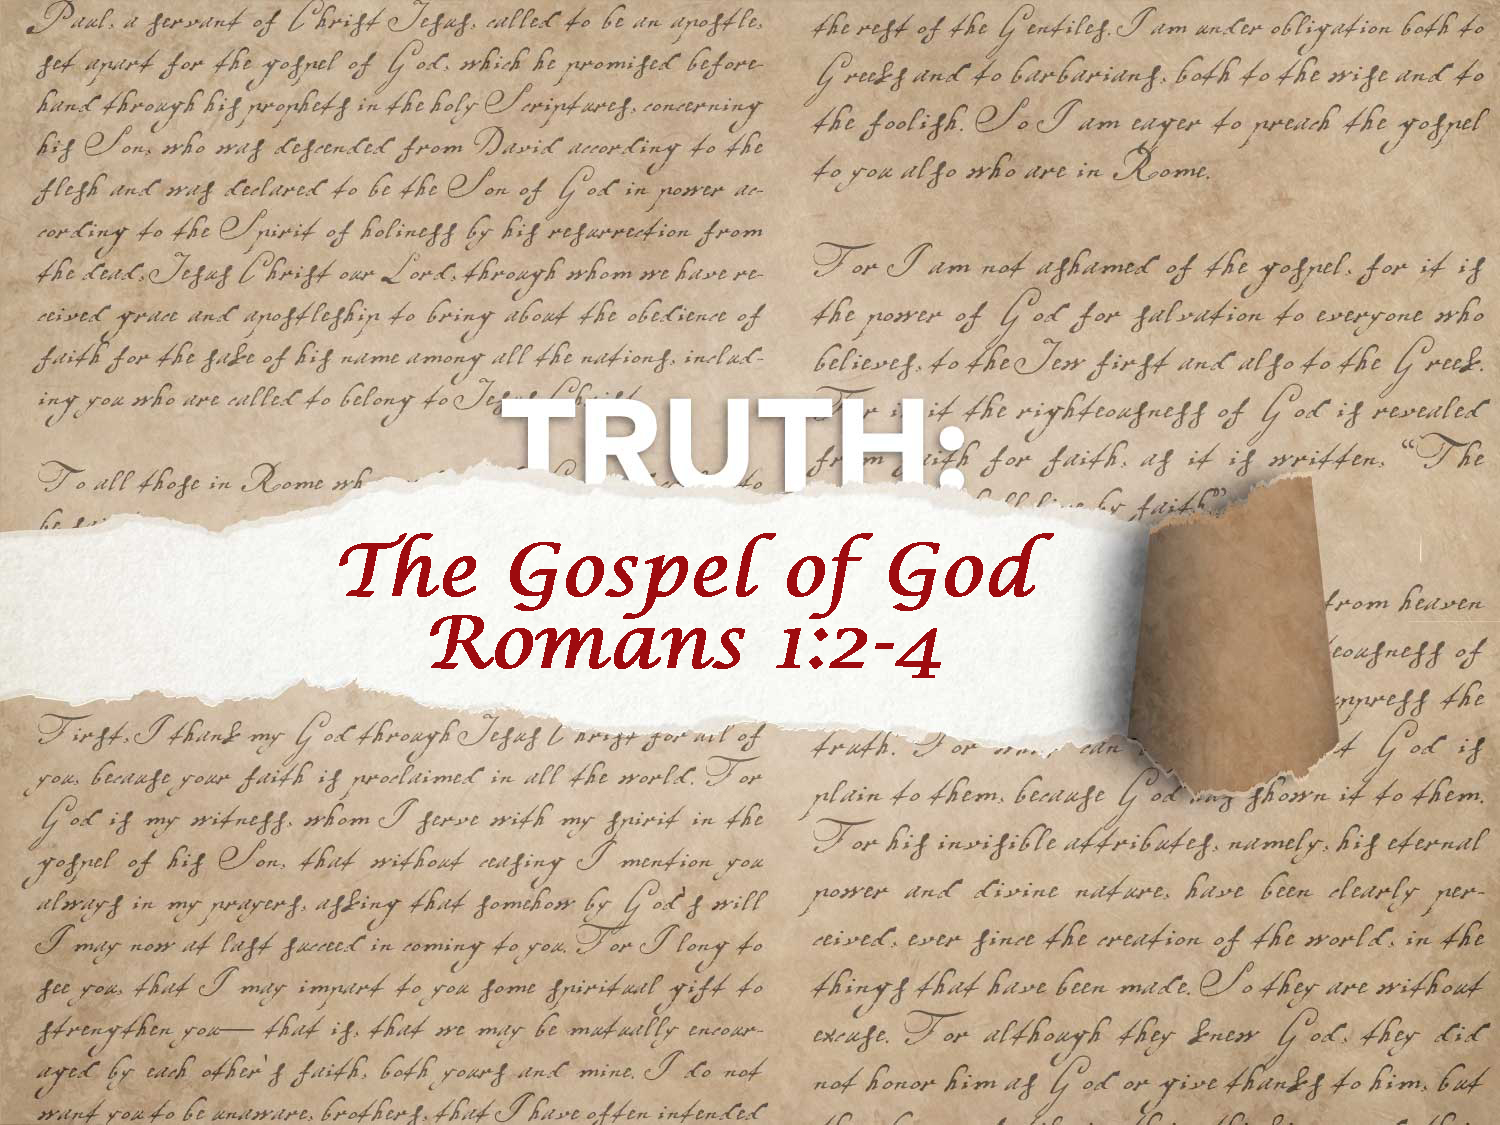 Romans 1:2-4 The Gospel of God